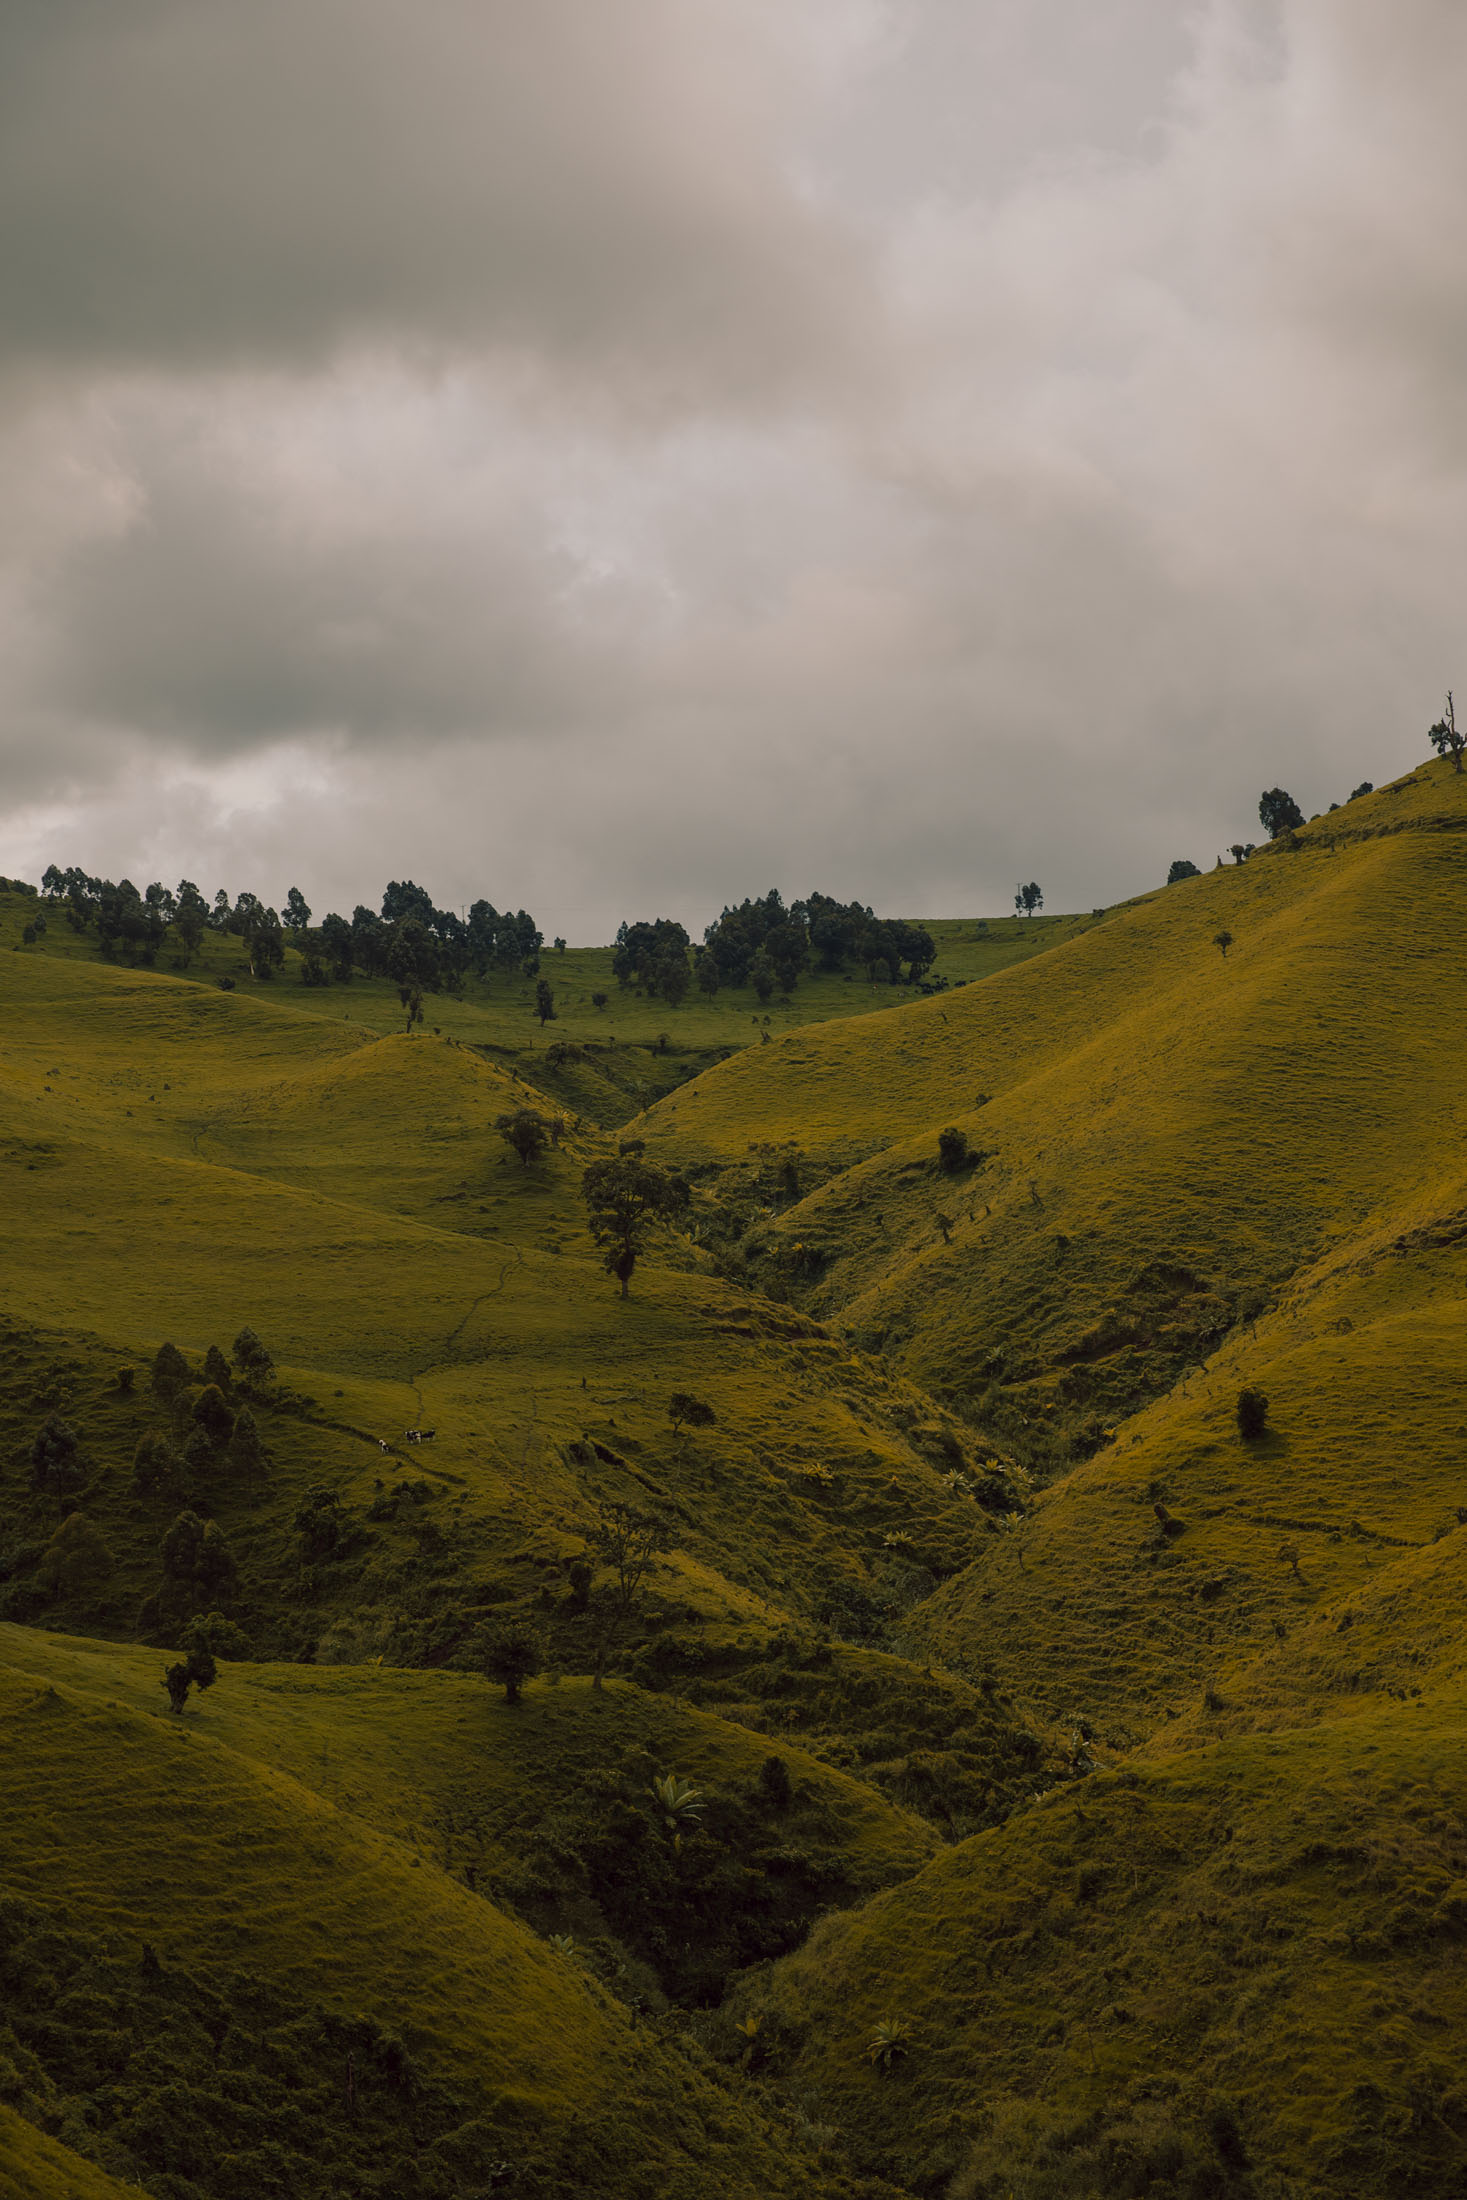 Rolling hills in Masisi Territory, North Kivu Province. The province is home to dozens of armed militias and rebel groups.